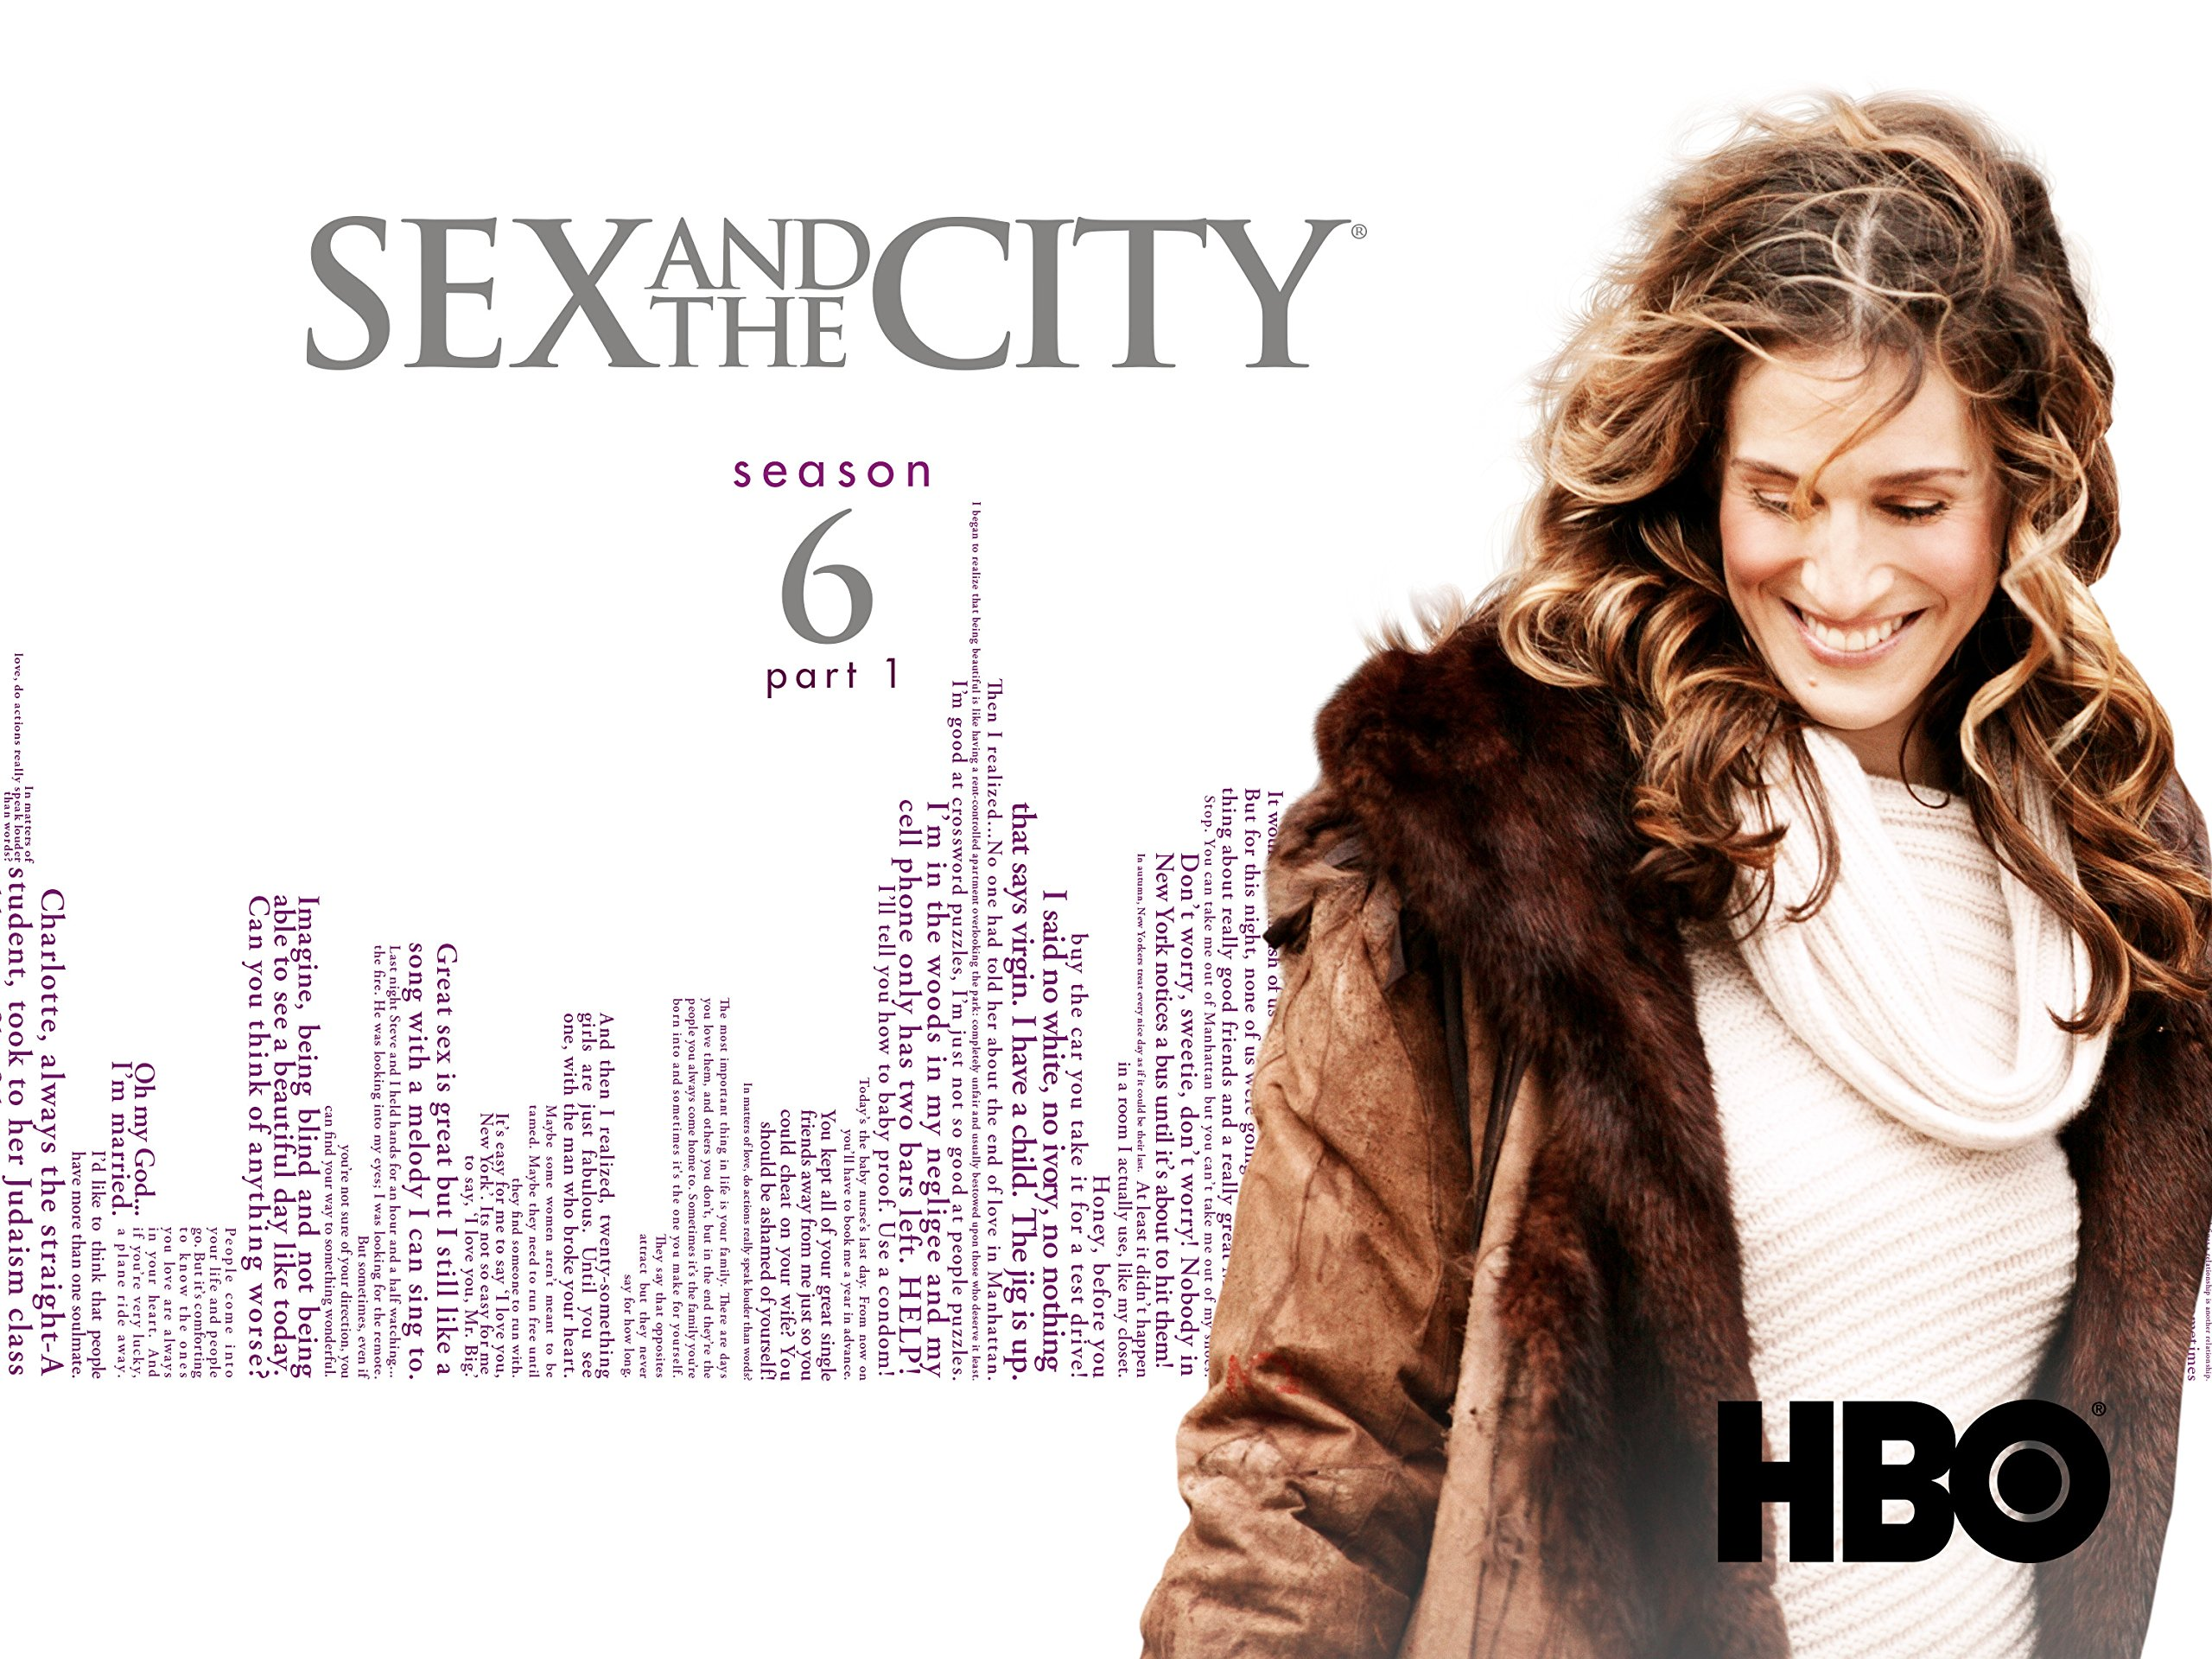 Sex and the city season 6 finale